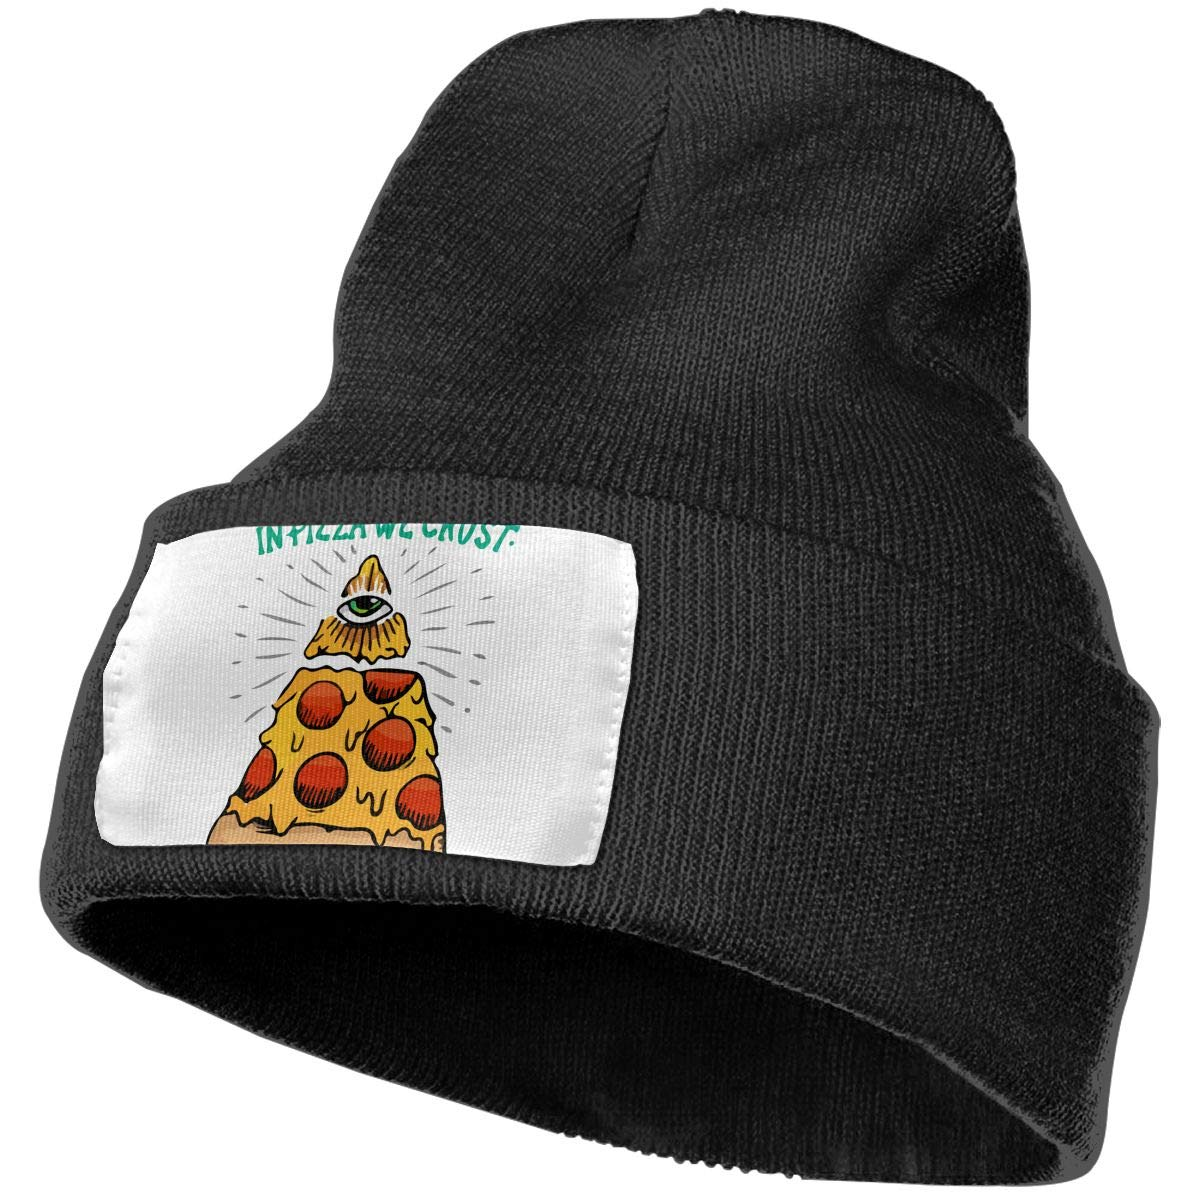 in Pizza We Crust Unisex Fashion Knitted Hat Luxury Hip-Hop Cap